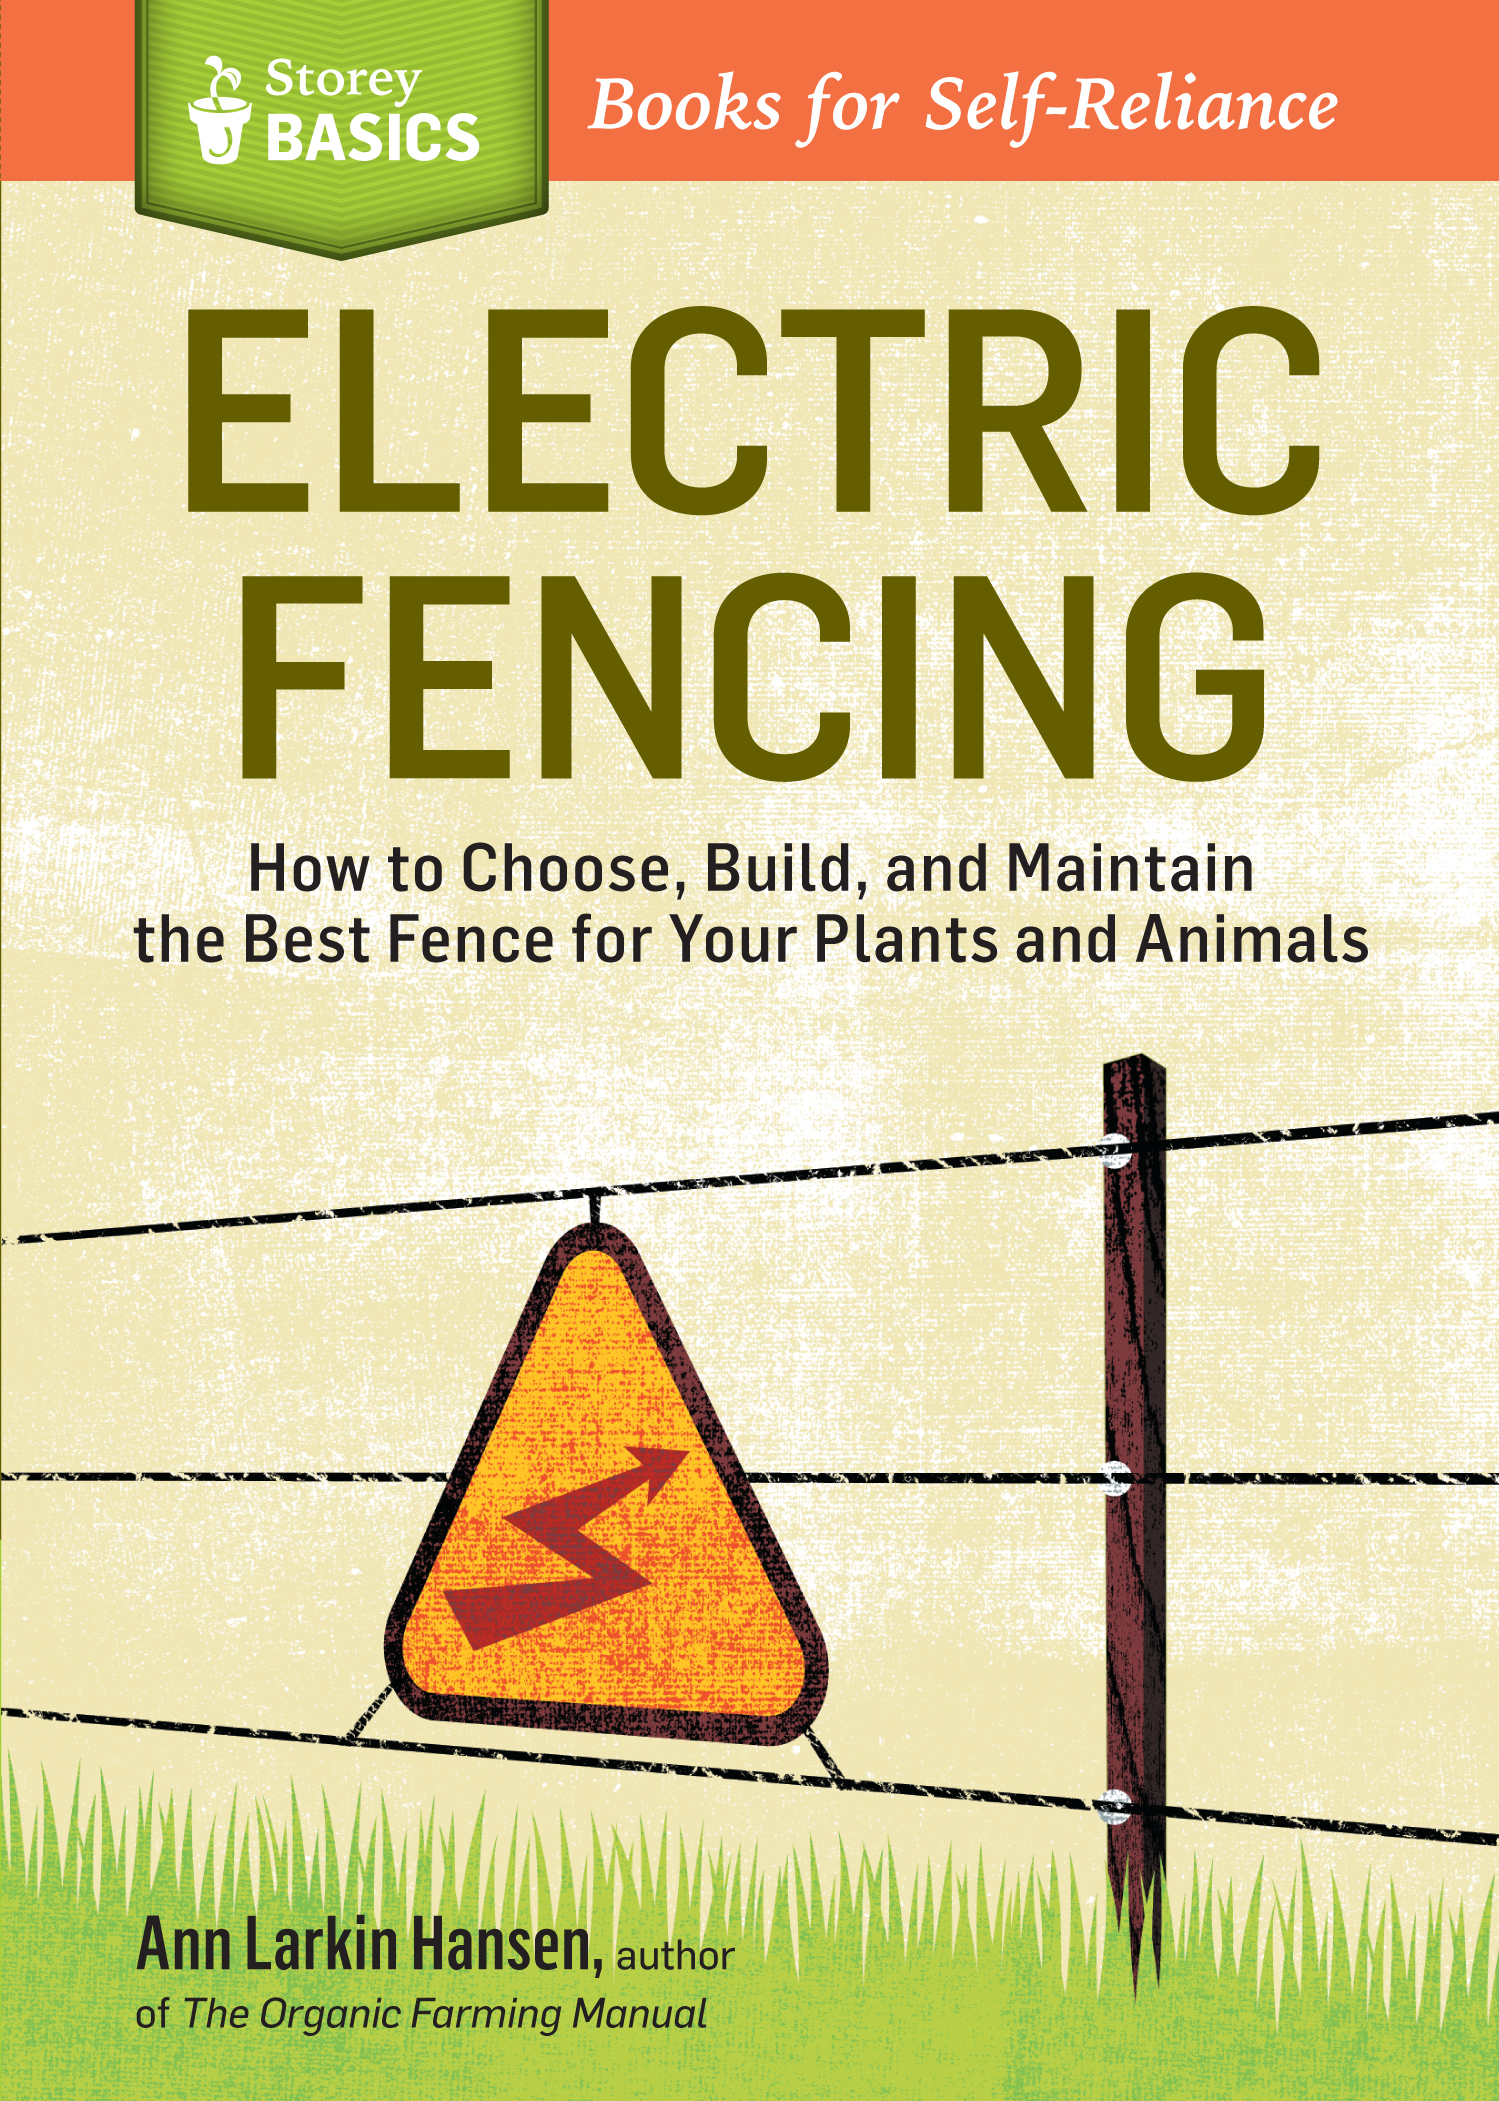 Electric Fencing How to Choose, Build, and Maintain the Best Fence for Your Plants and Animals. A Storey BASICS® Title - Ann Larkin Hansen